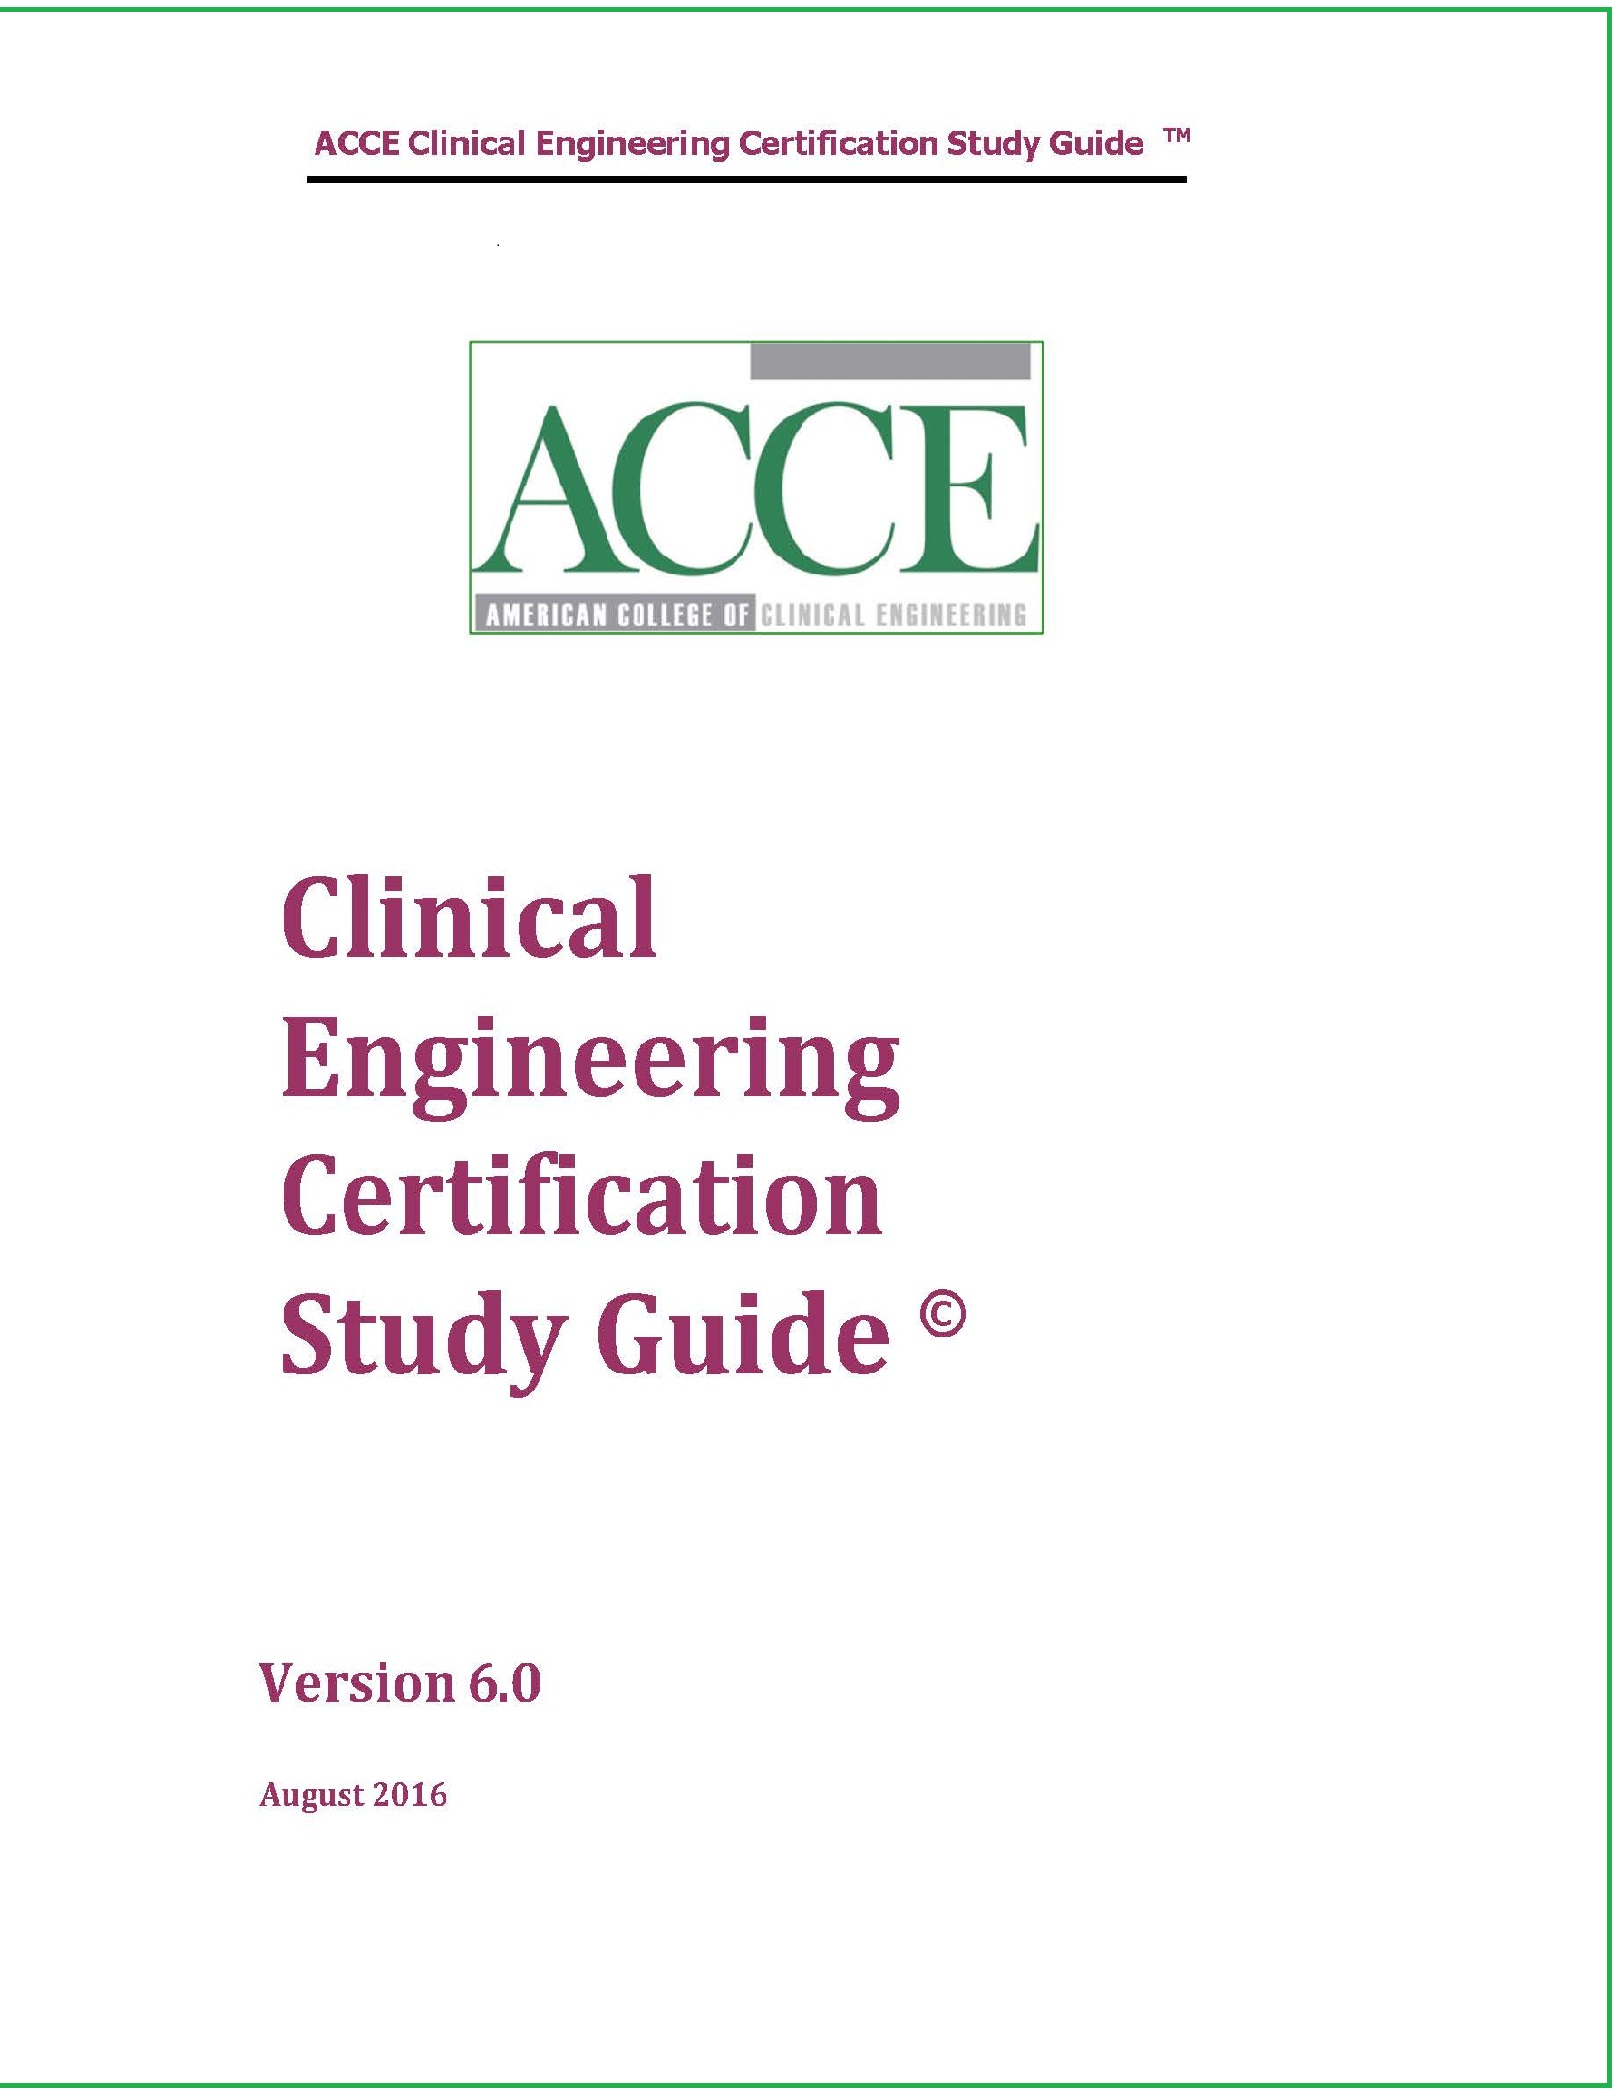 Images Cce Studyguidev6